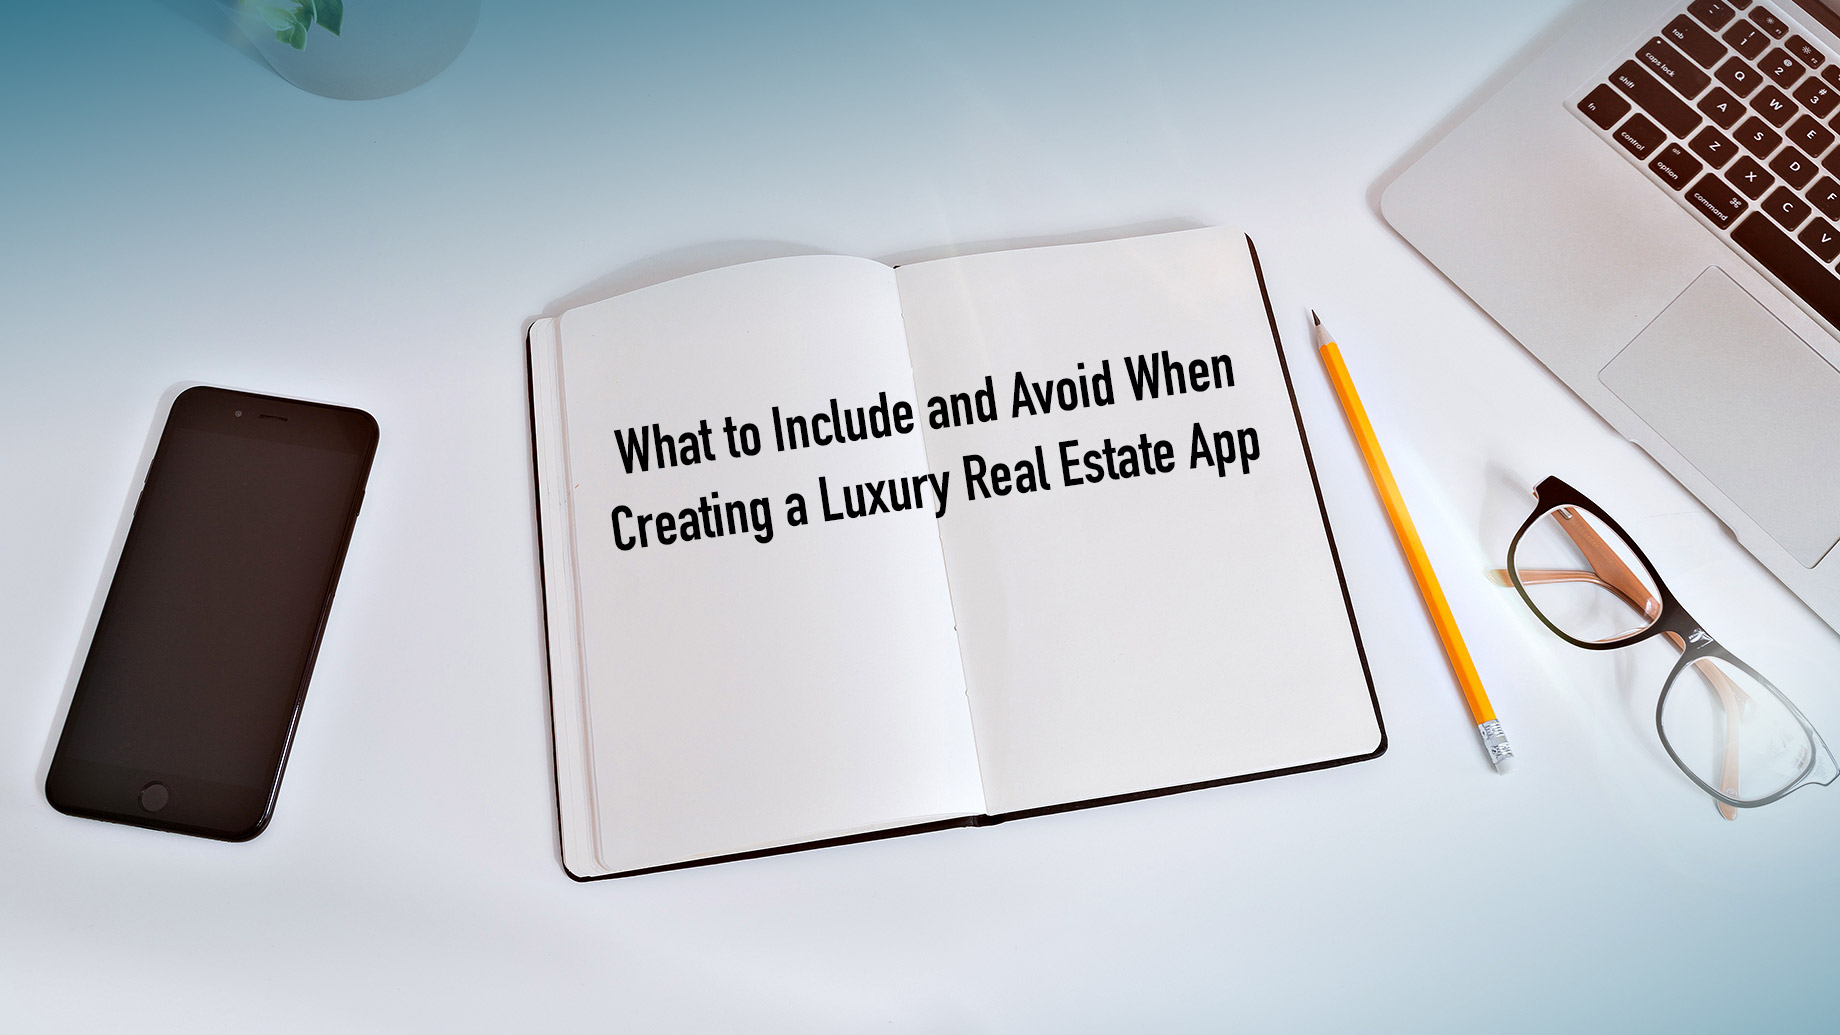 What to Include and Avoid When Creating a Luxury Real Estate App